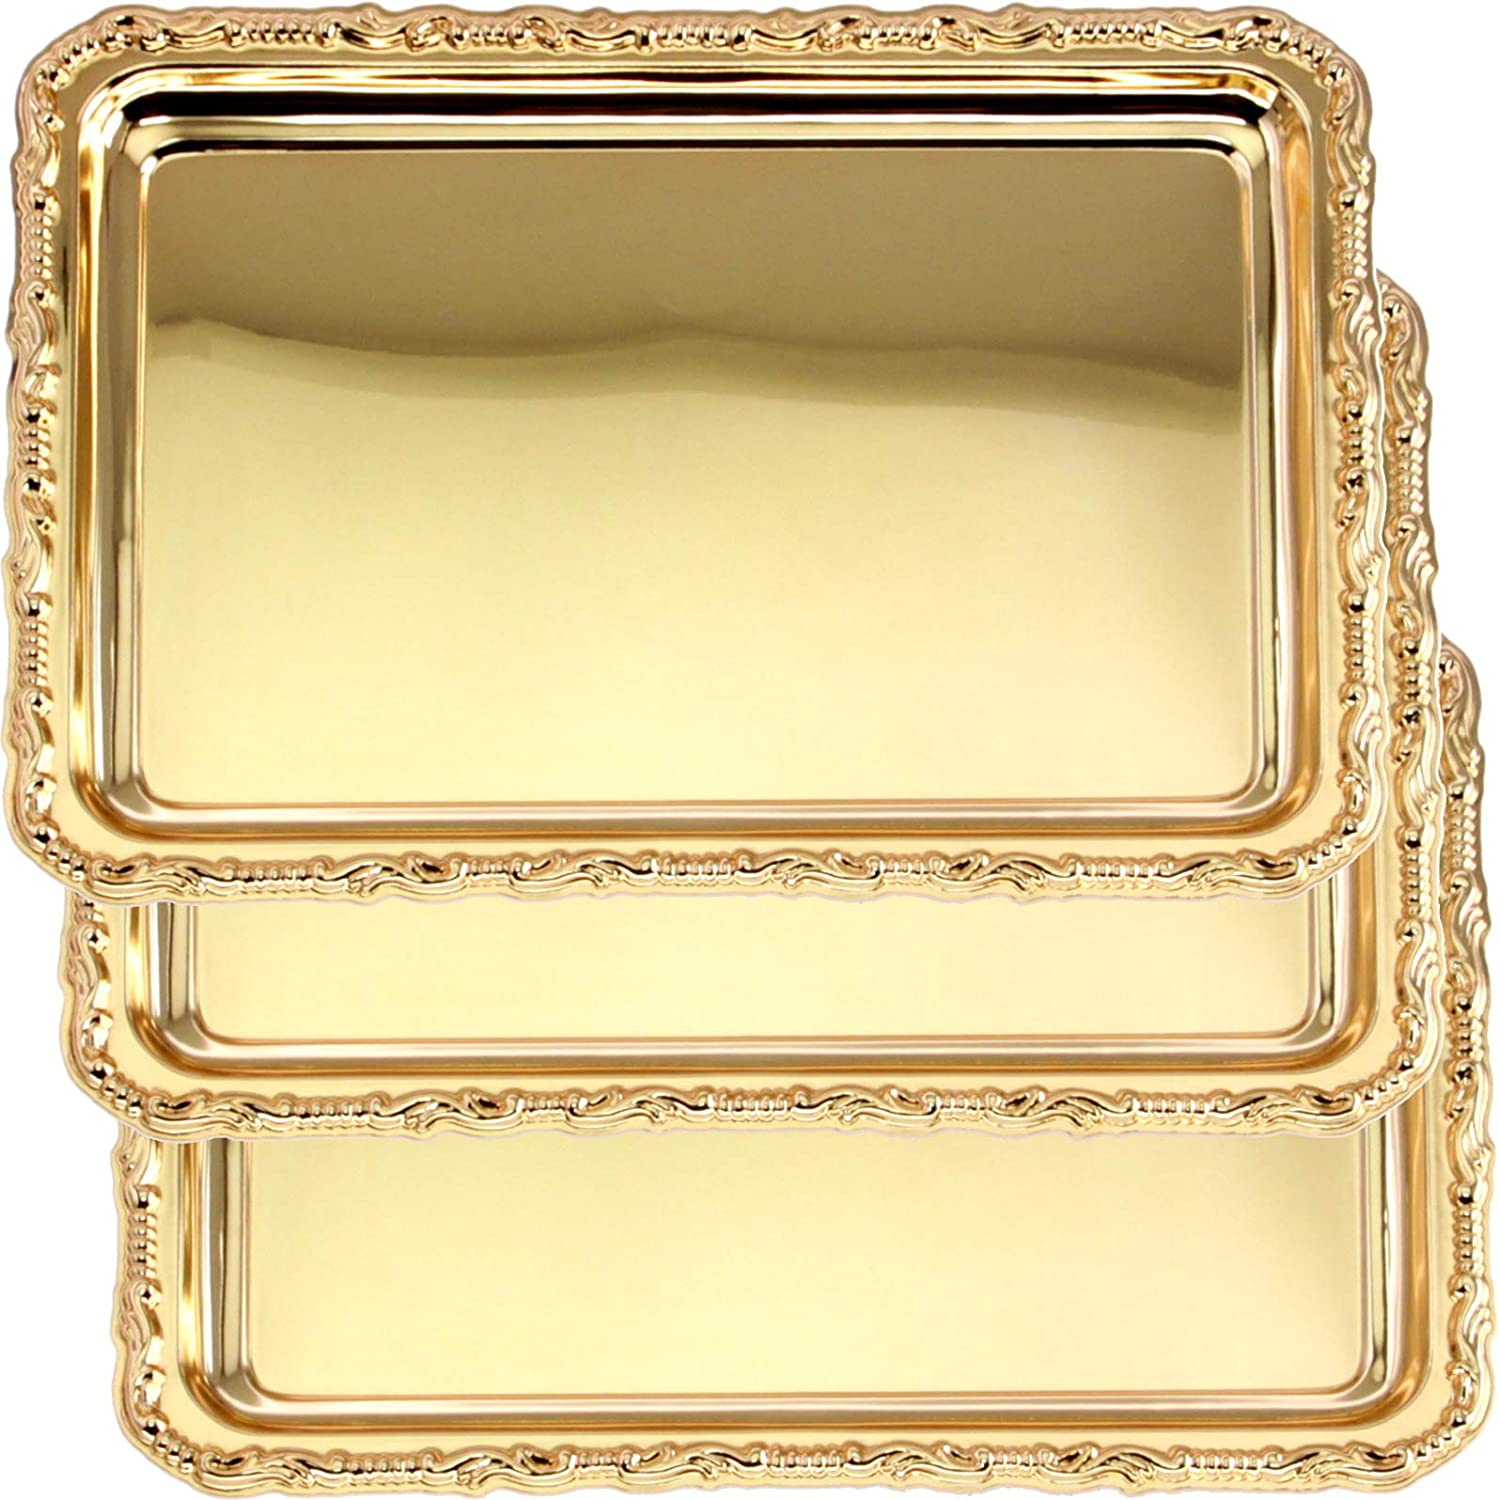 Maro Megastore (Pack of 3) 12.5 Inch x 9.1 Inch Rectangular Iron Gold Plated Serving Tray Floral Edge Decorative Party Birthday Wedding Dessert Buffet Wine Candle Decor Platter Plate Base Dish CC-531